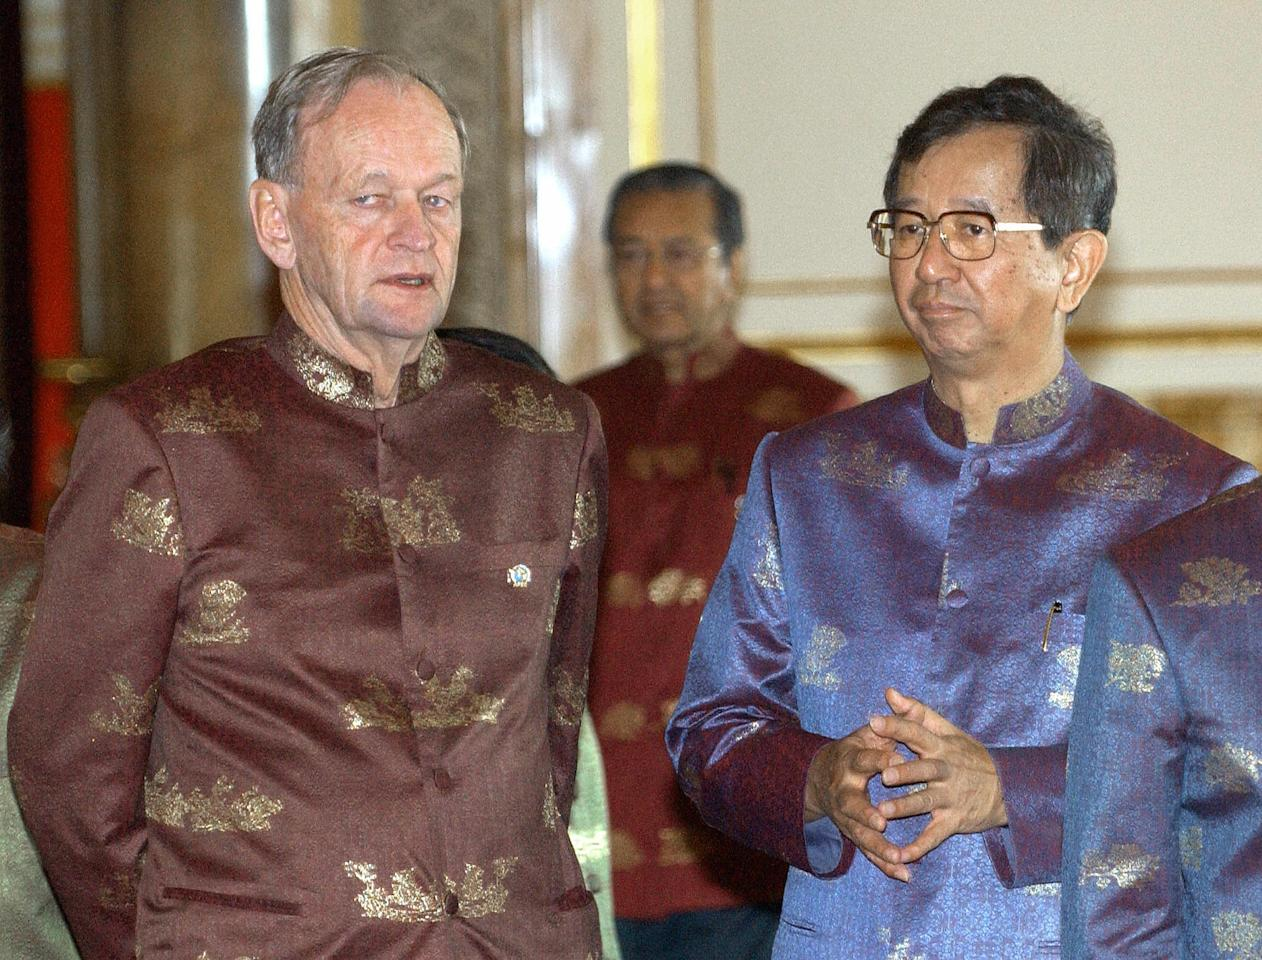 <p>Former Canadian Prime Minister John Chretien, left, stands next to Taiwan representative Lee Yuan-tseh at the end of the APEC Economic Leaders' Declaration at the Ananta Samakhom Throne Hall in Bangkok on Oct. 21, 2003. Photo from Adek Berry/AFP/Getty Images. </p>